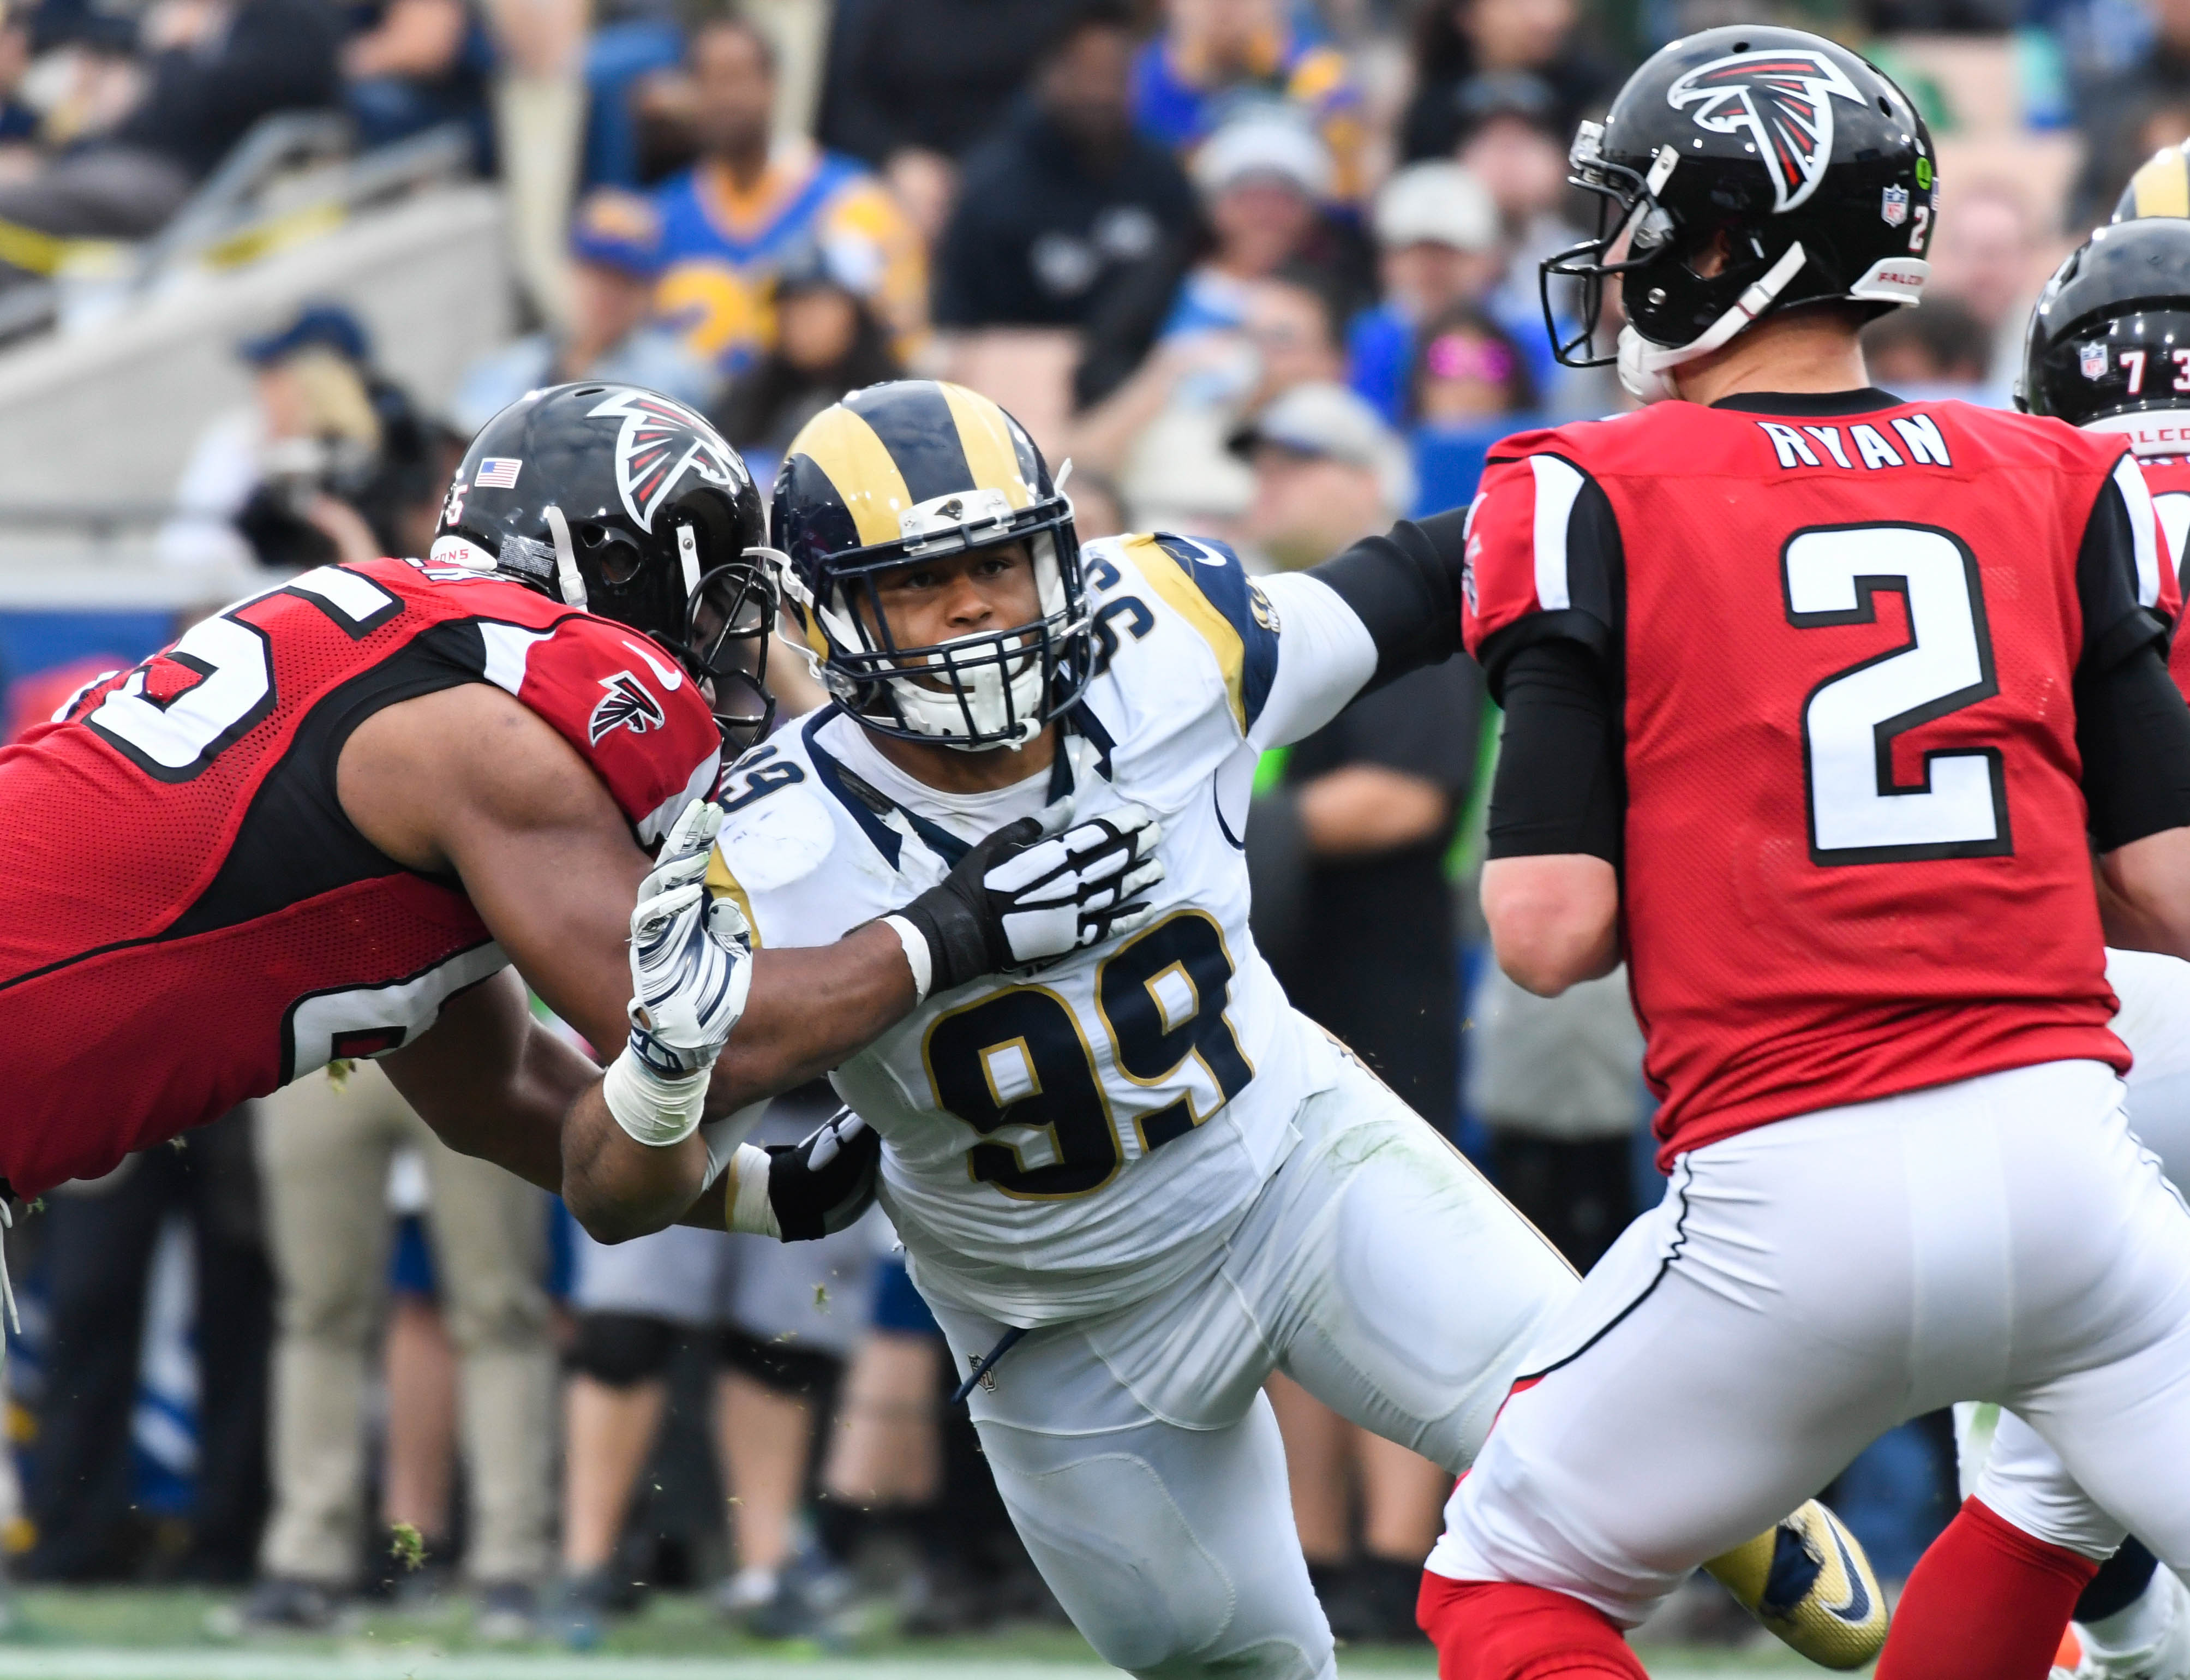 Dec 11, 2016; Los Angeles, CA, USA; Los Angeles Rams defensive tackle Aaron Donald (99) pressures Atlanta Falcons quarterback Matt Ryan (2) at the Los Angeles Memorial Coliseum. Mandatory Credit: Robert Hanashiro-USA TODAY Sports